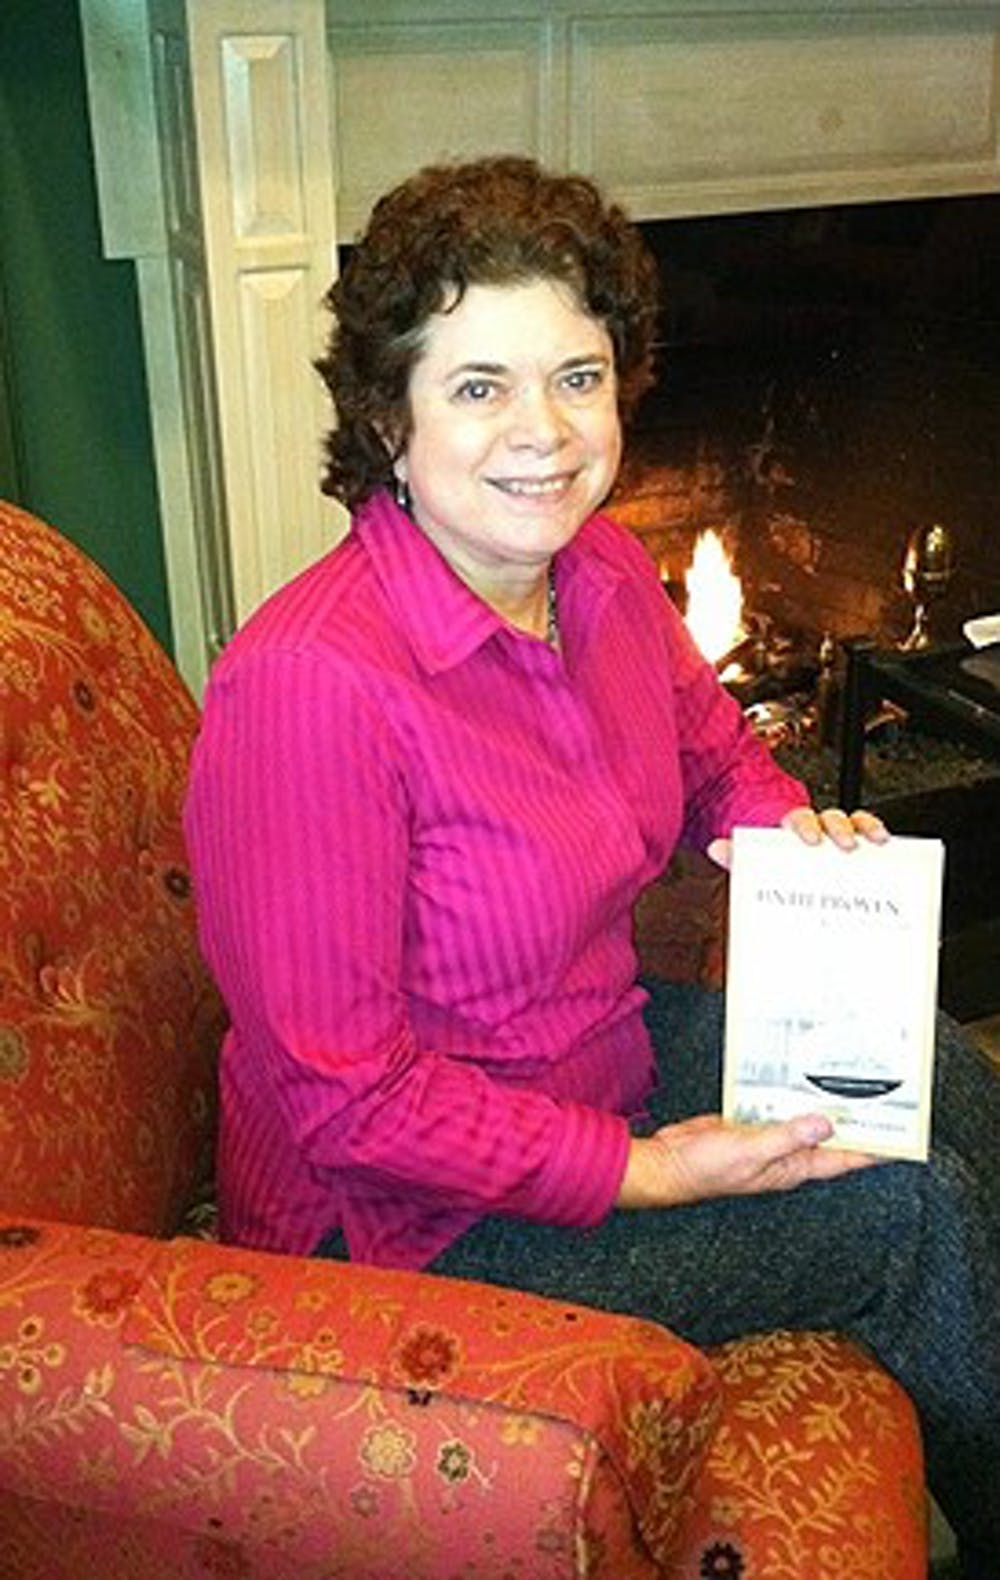 Q&A with local author Nora Gaskin